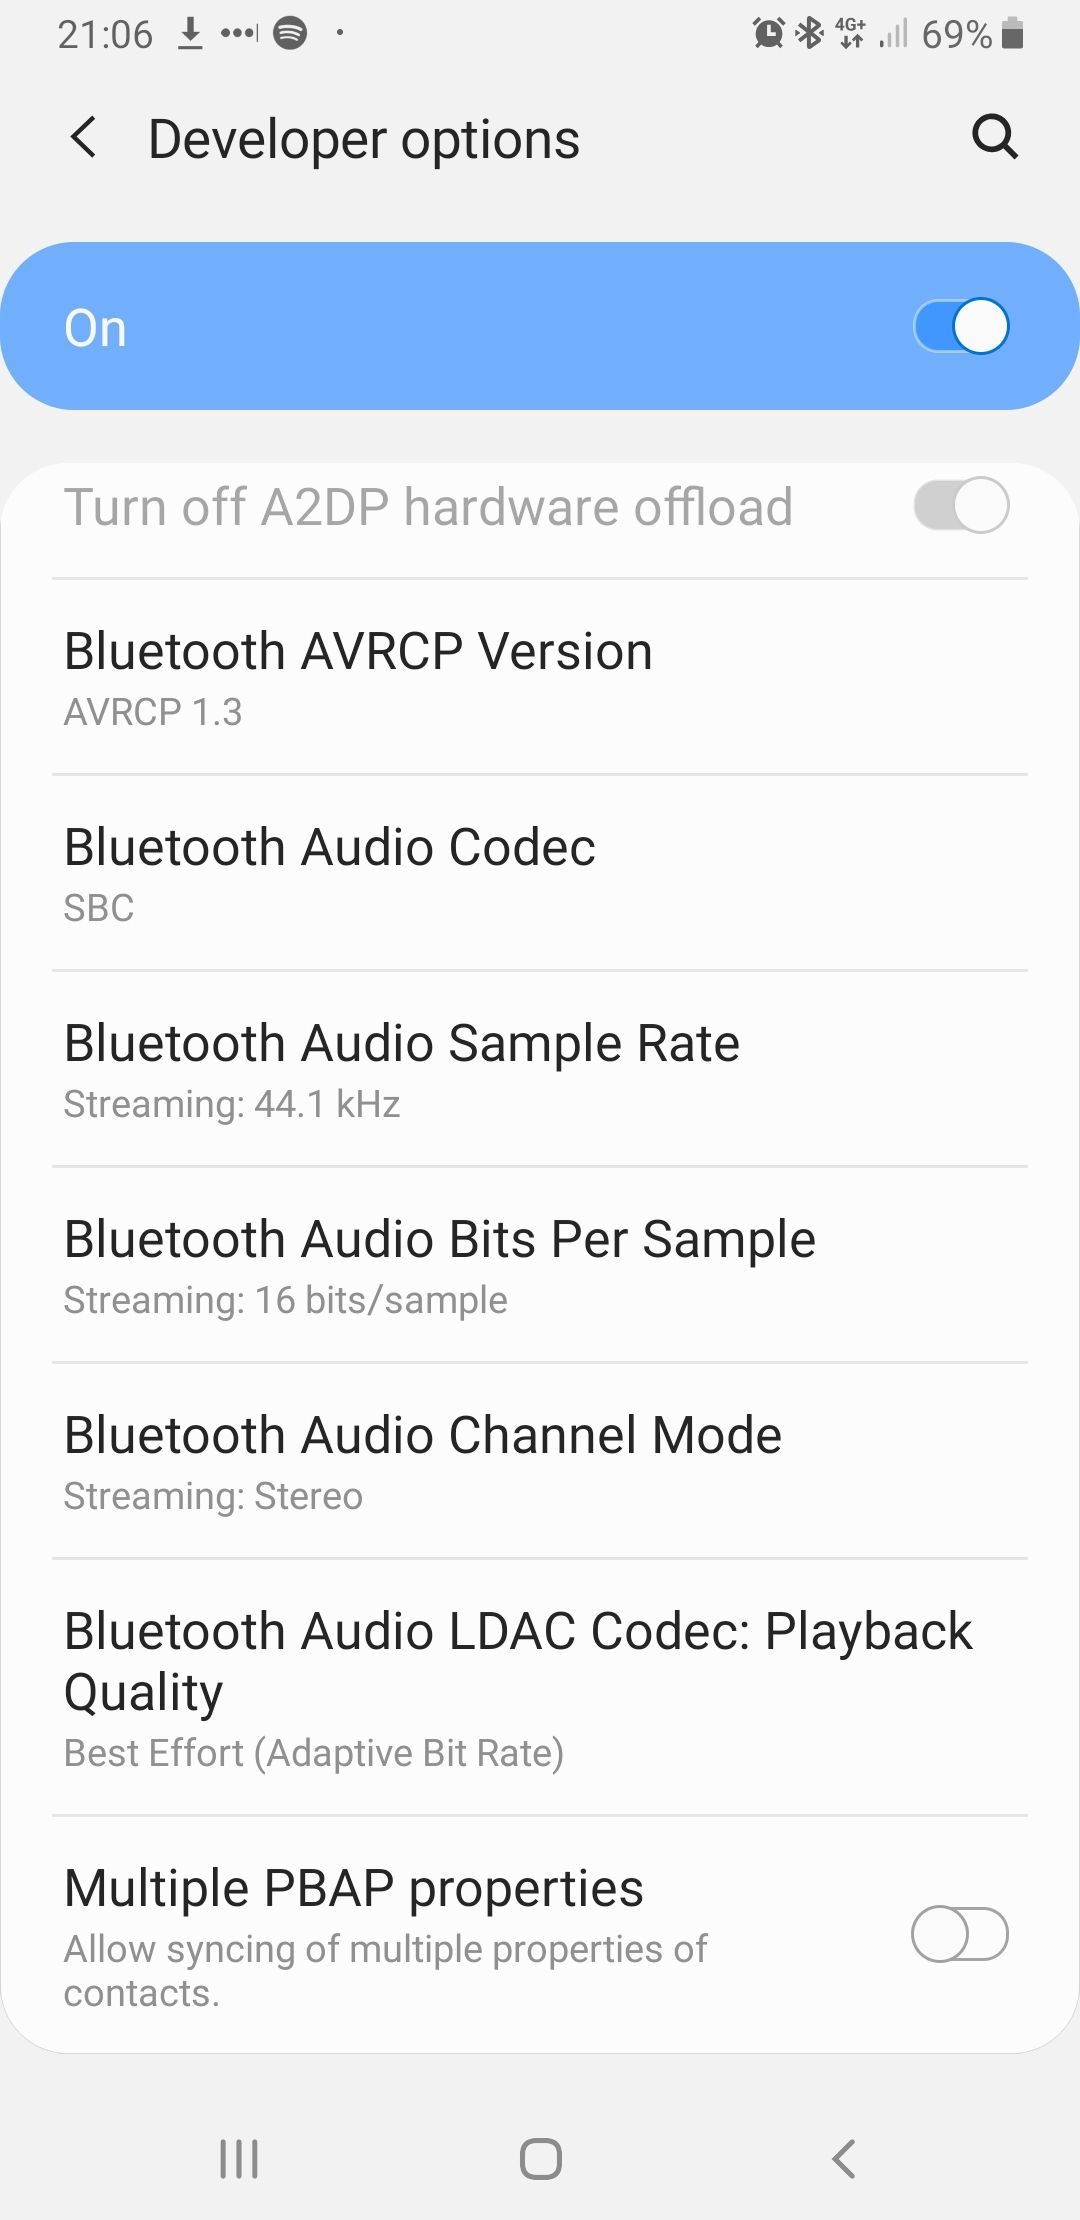 Galaxy S9 Bluetooth issues Android 9 Pie - Samsung Community